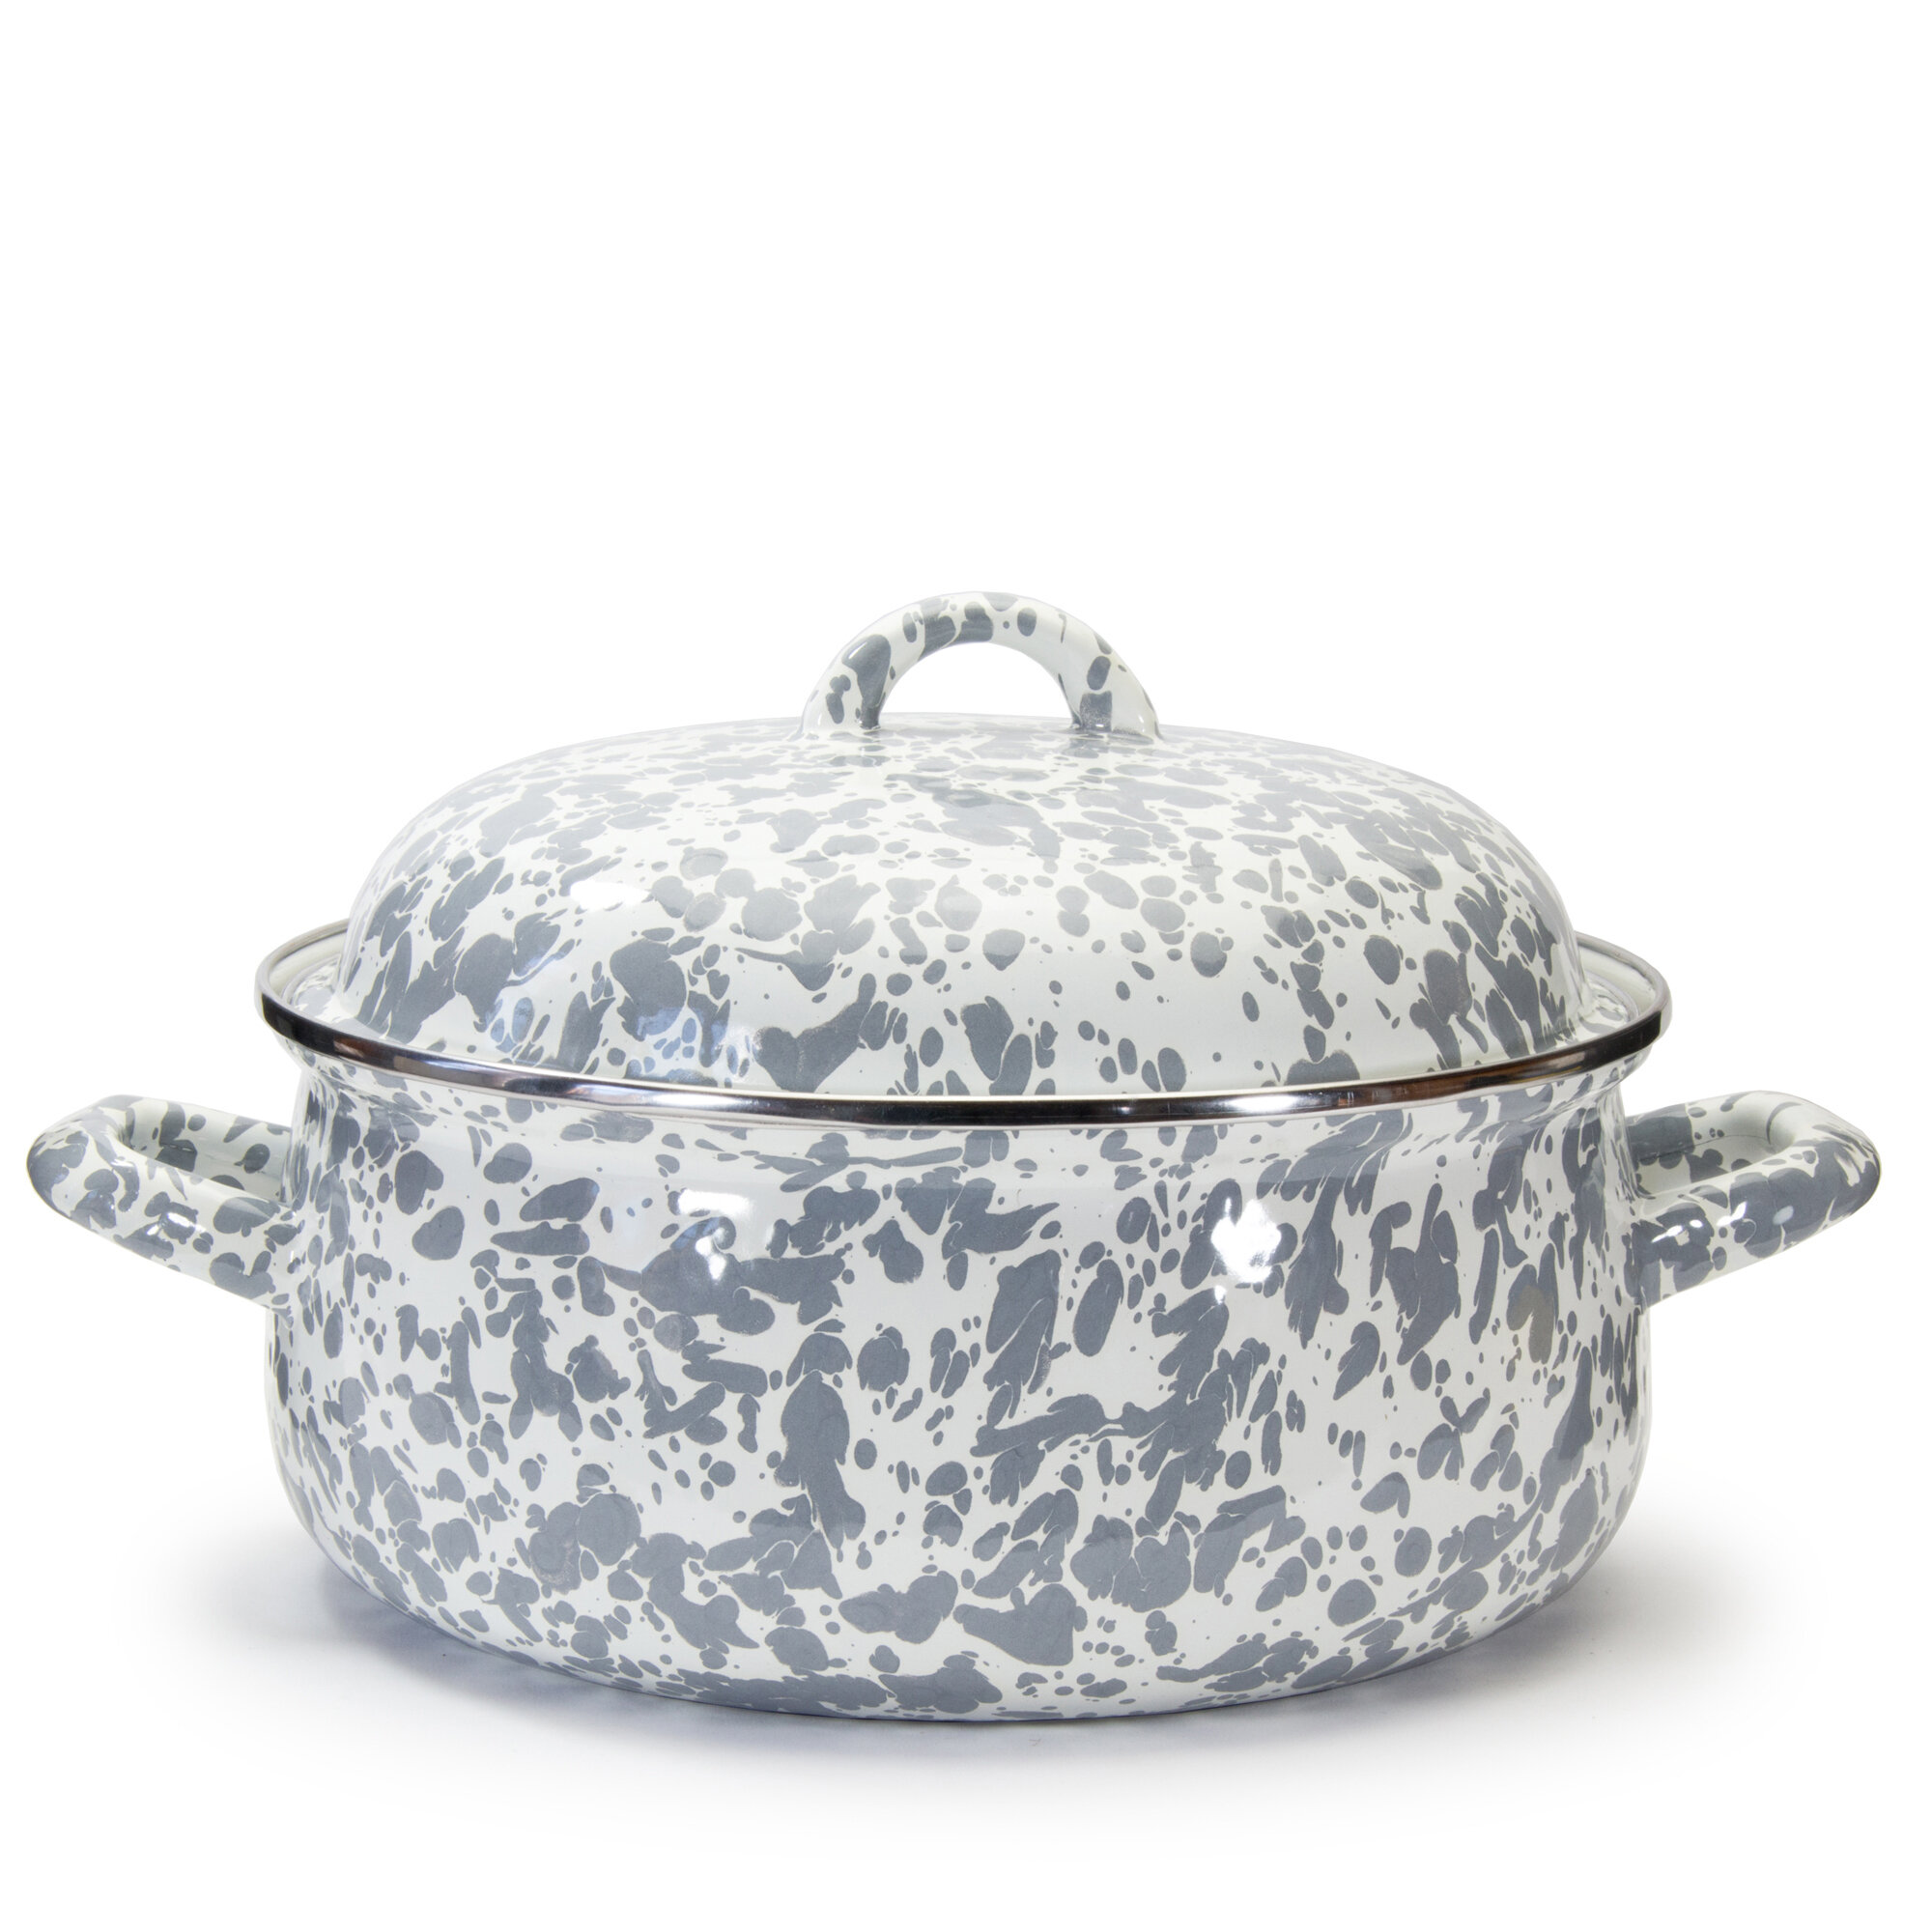 Ivy Bronx Gadberry 4 Qt. Porcelain Round Dutch Oven with Lid